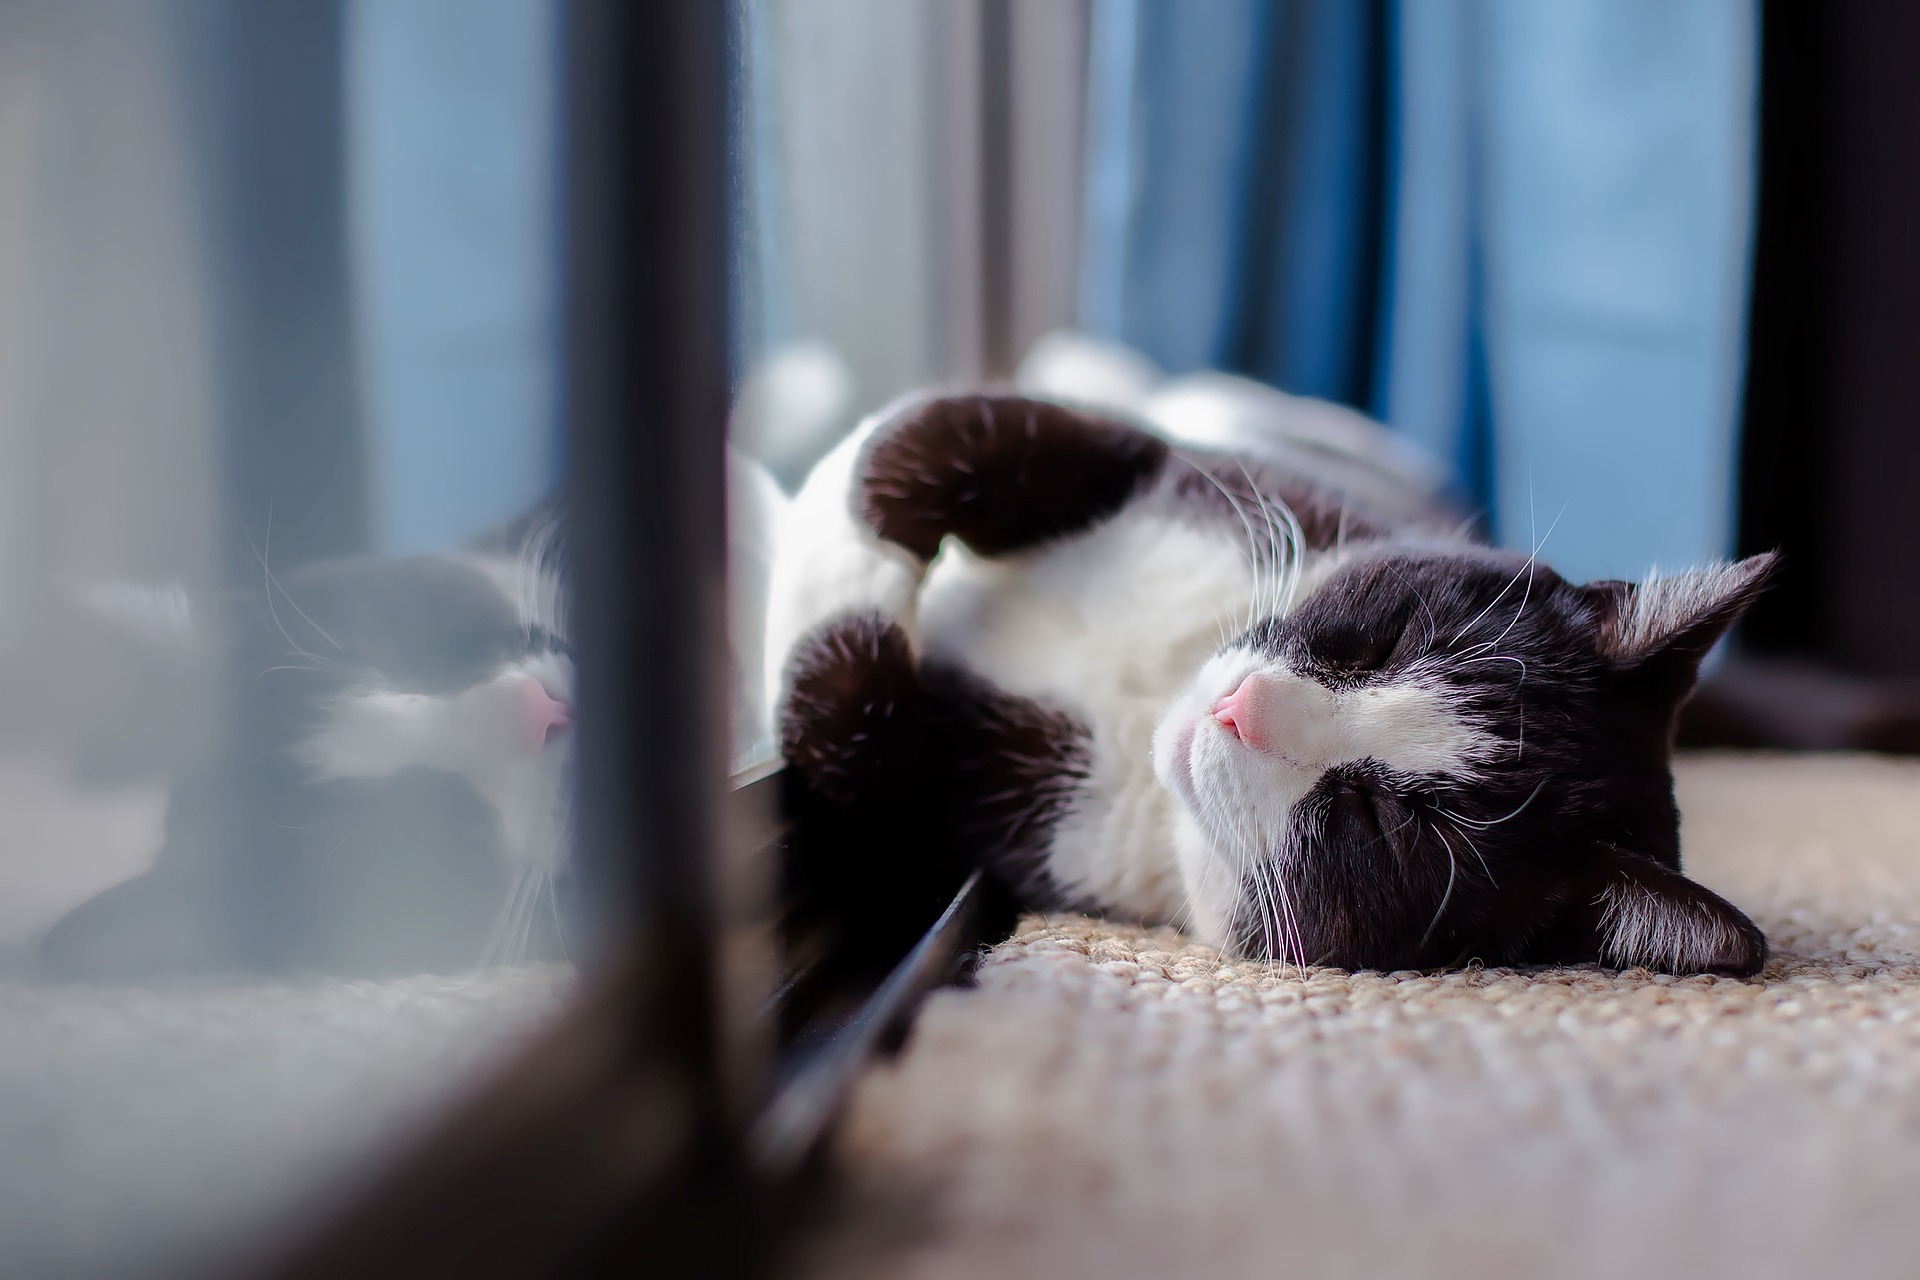 Thyroid Disease In Cats Linked To Chemical Found In Our Homes